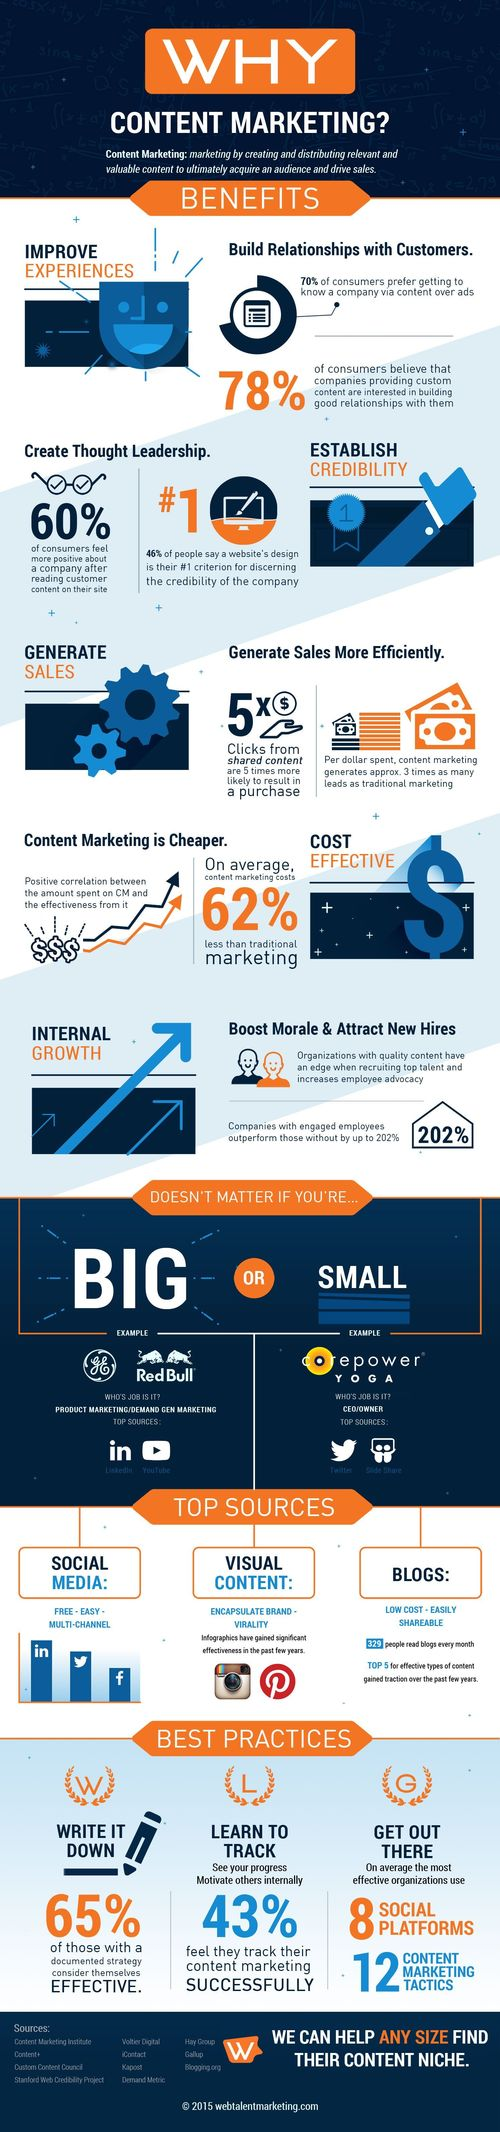 infographic ContentMarketing Marketing